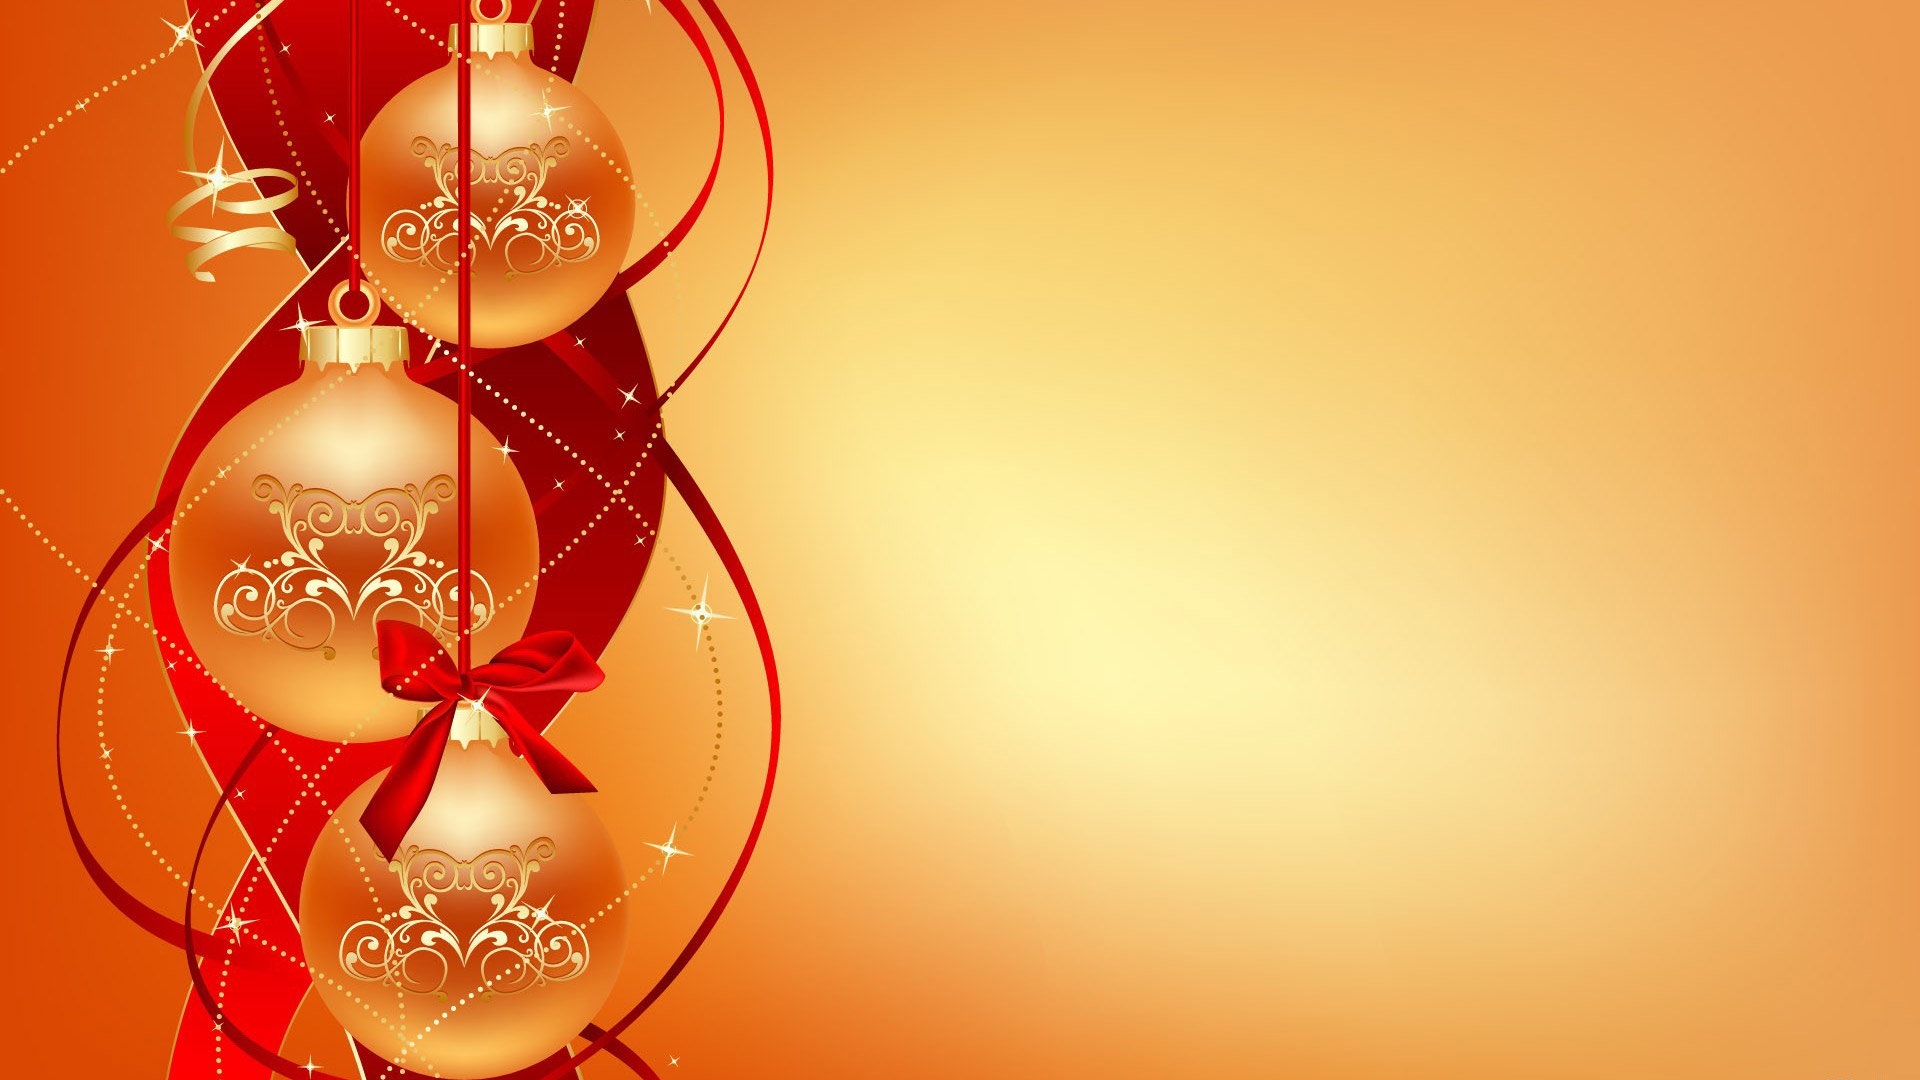 New Year background Desktop hd Wallpaper and make this wallpaper for 1920x1080